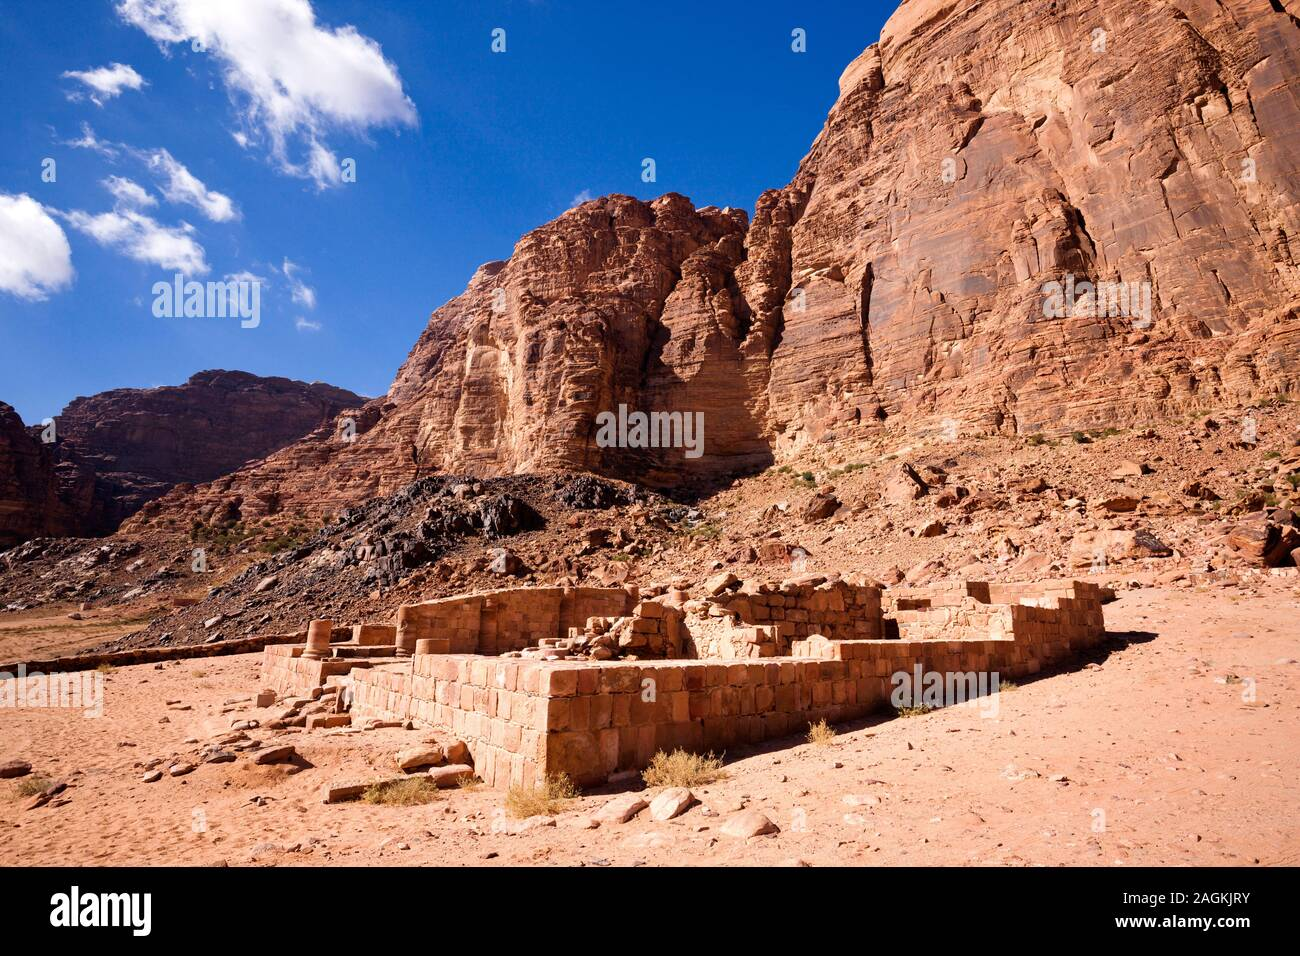 Wadi Rum, Nabataen Temple, and view of eroded rocky moutains, Jordan, middle east, Asia Stock Photo